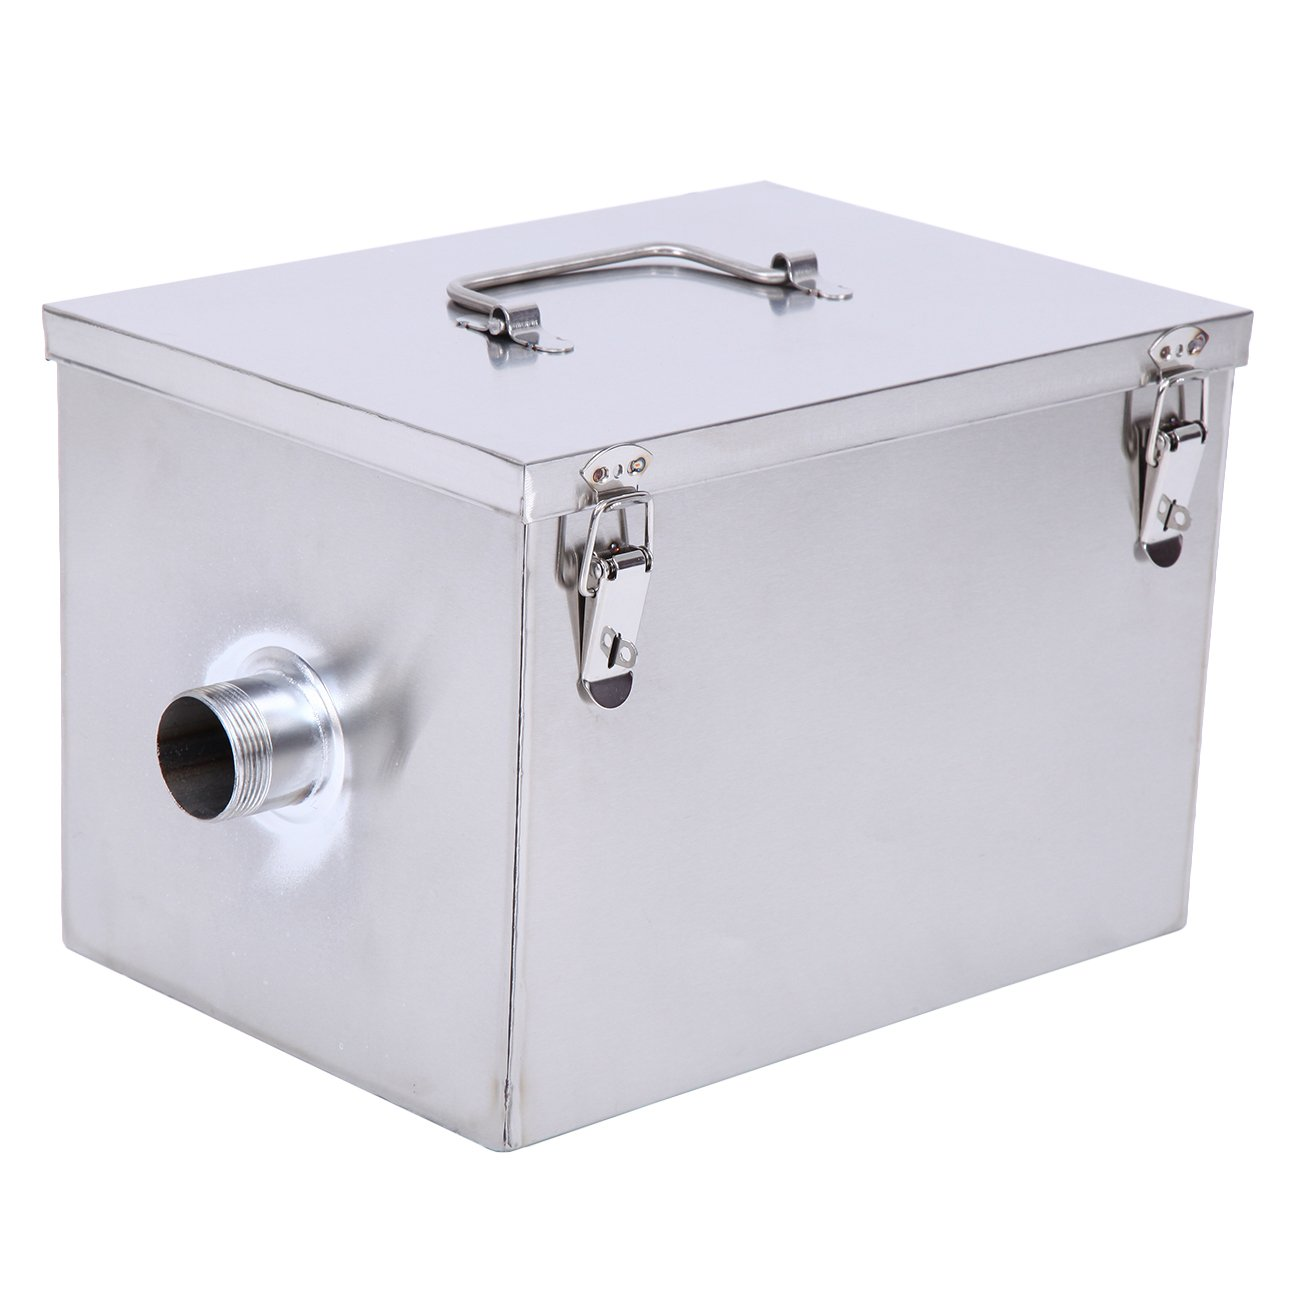 XuanYue Commercial Grease Trap 8 LB 5 GPM Gallon per Minute Stainless Steel Grease Interceptor Kitchen Kit for Restaurant Factory and Home by XuanYue